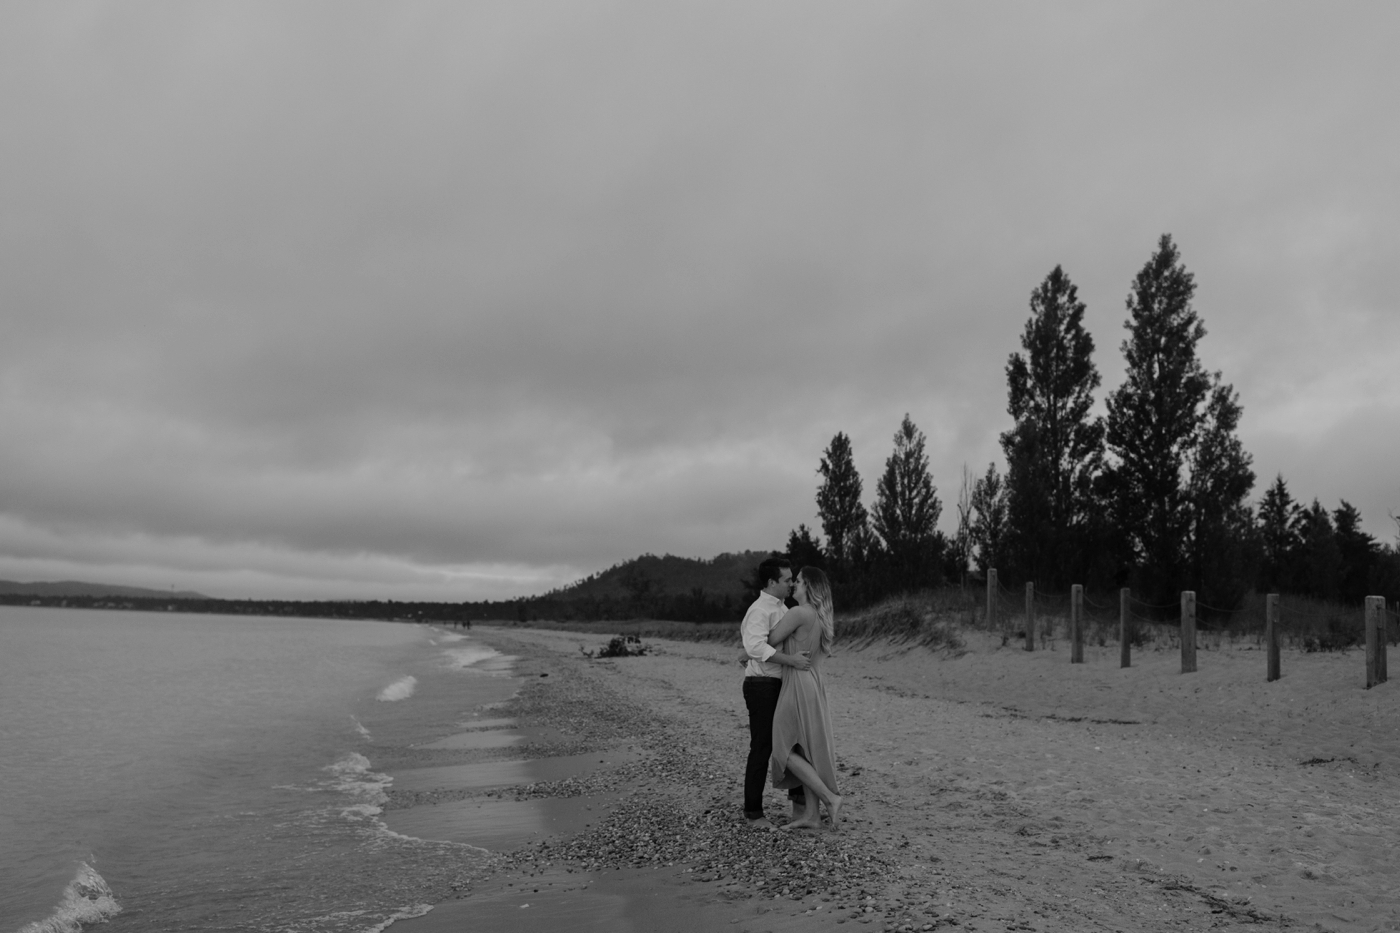 Sleeping_Bear_Dunes_Couples_Adventure_Session_Adventure_Wedding_Photographer_Hiking_with_Heels_Brett+Emily-75.jpg